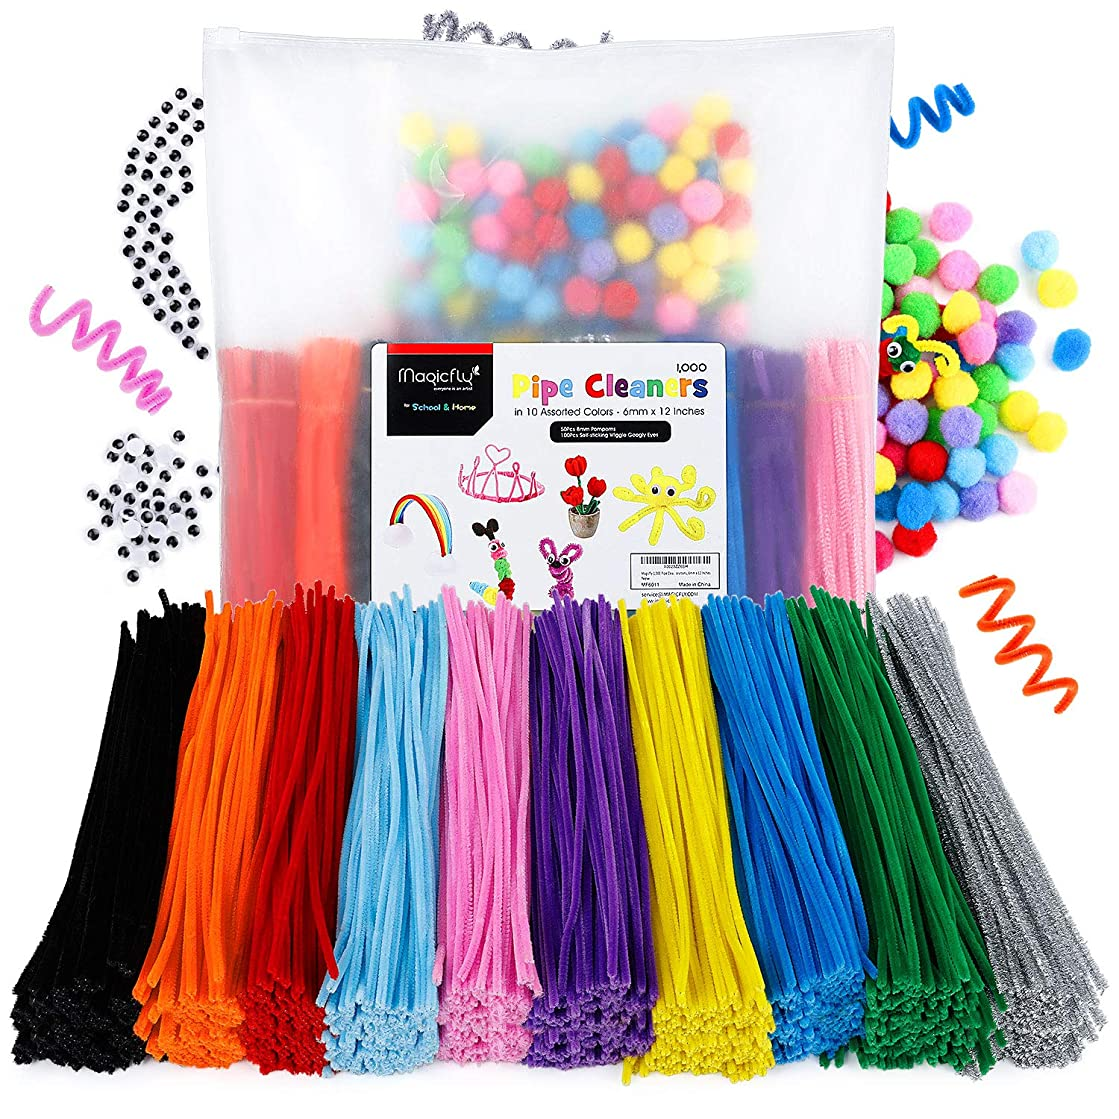 Magicfly 1000 Pcs Pipe Cleaners with 100 Pieces Pompom Balls 25mm and 50 Pcs Wiggle Googly Eyes, Chenille Stems in 10 Assorted Colors, 6mm x12 inch for DIY Arts & Craft Projects